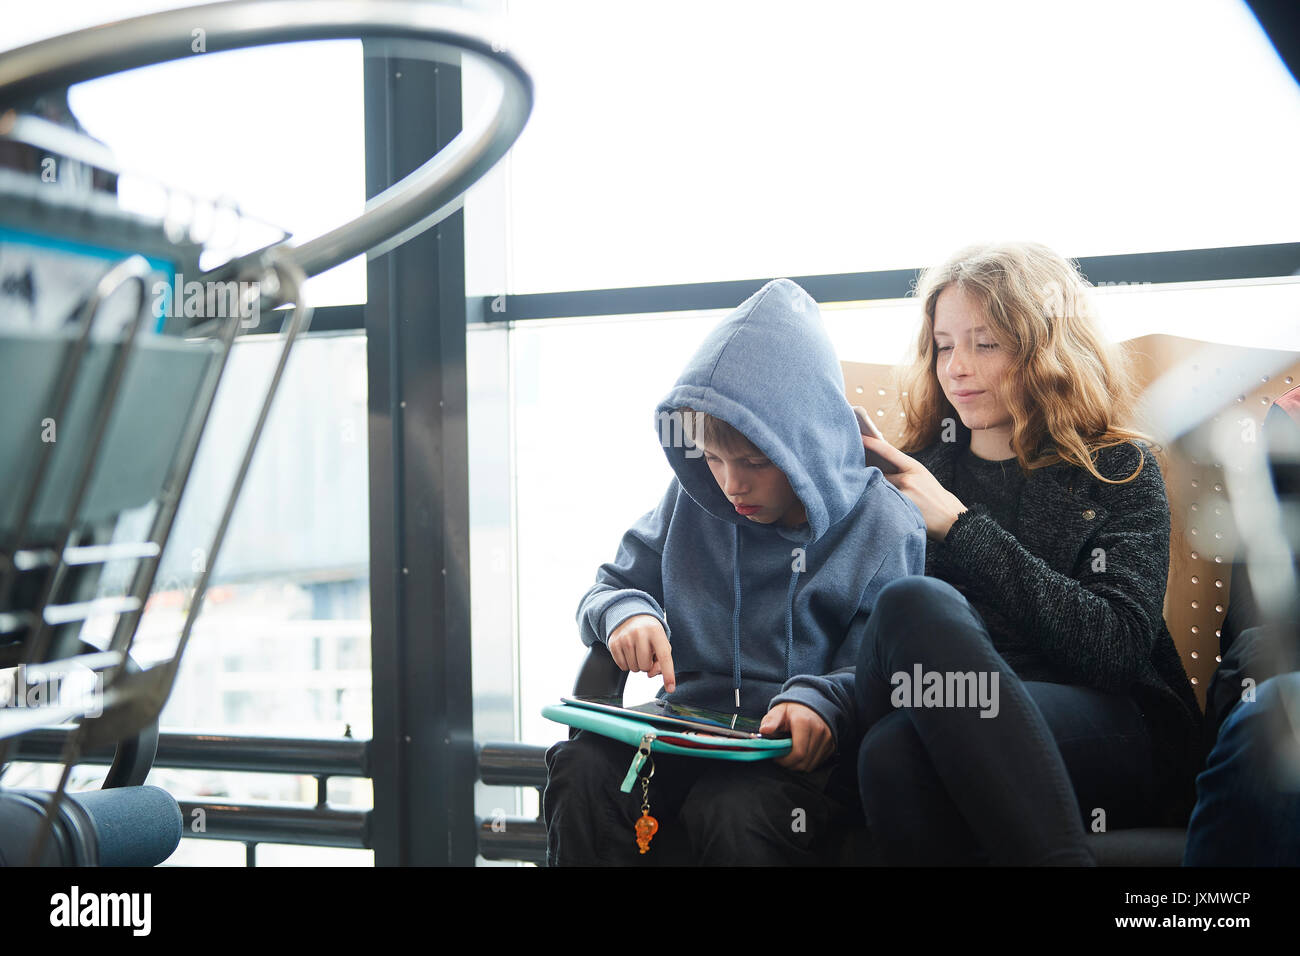 Siblings at airport on way to holiday, Copenhagen, Denmark - Stock Image